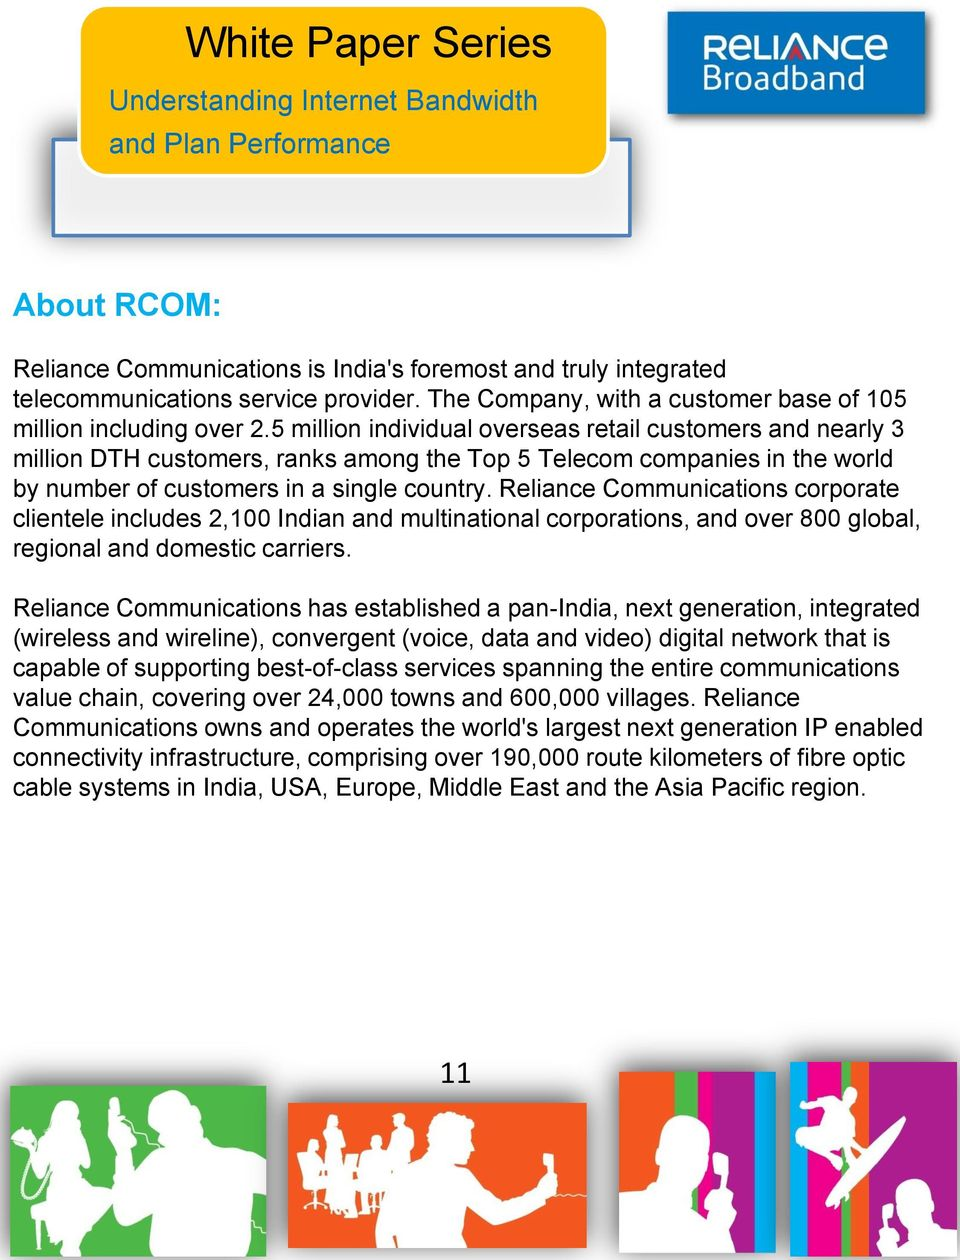 Reliance Communications corporate clientele includes 2,100 Indian and multinational corporations, and over 800 global, regional and domestic carriers.